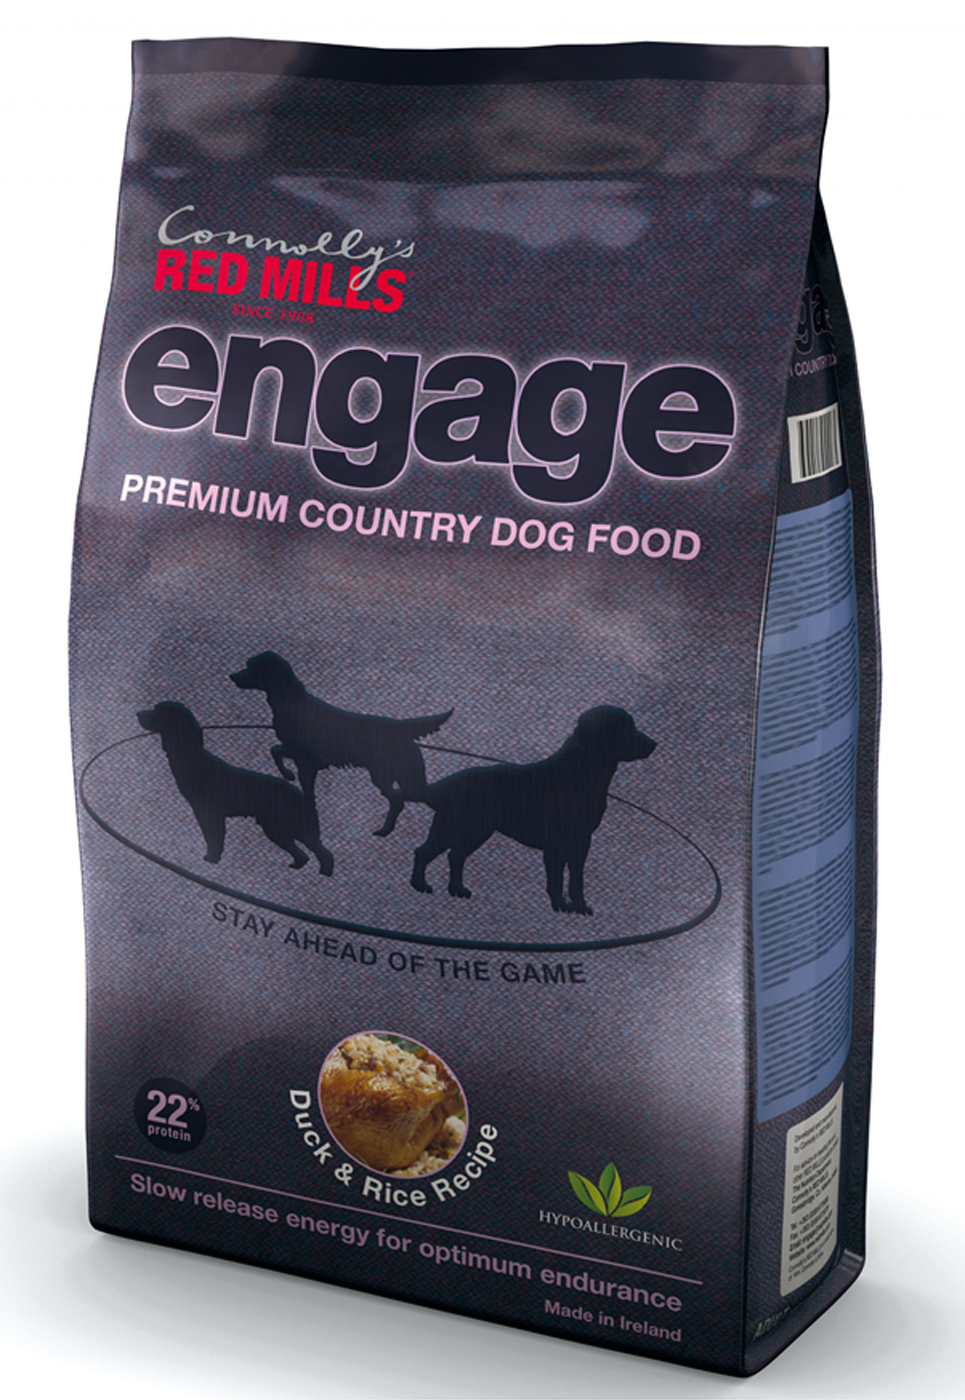 Red Mills Engage Dog Food Review